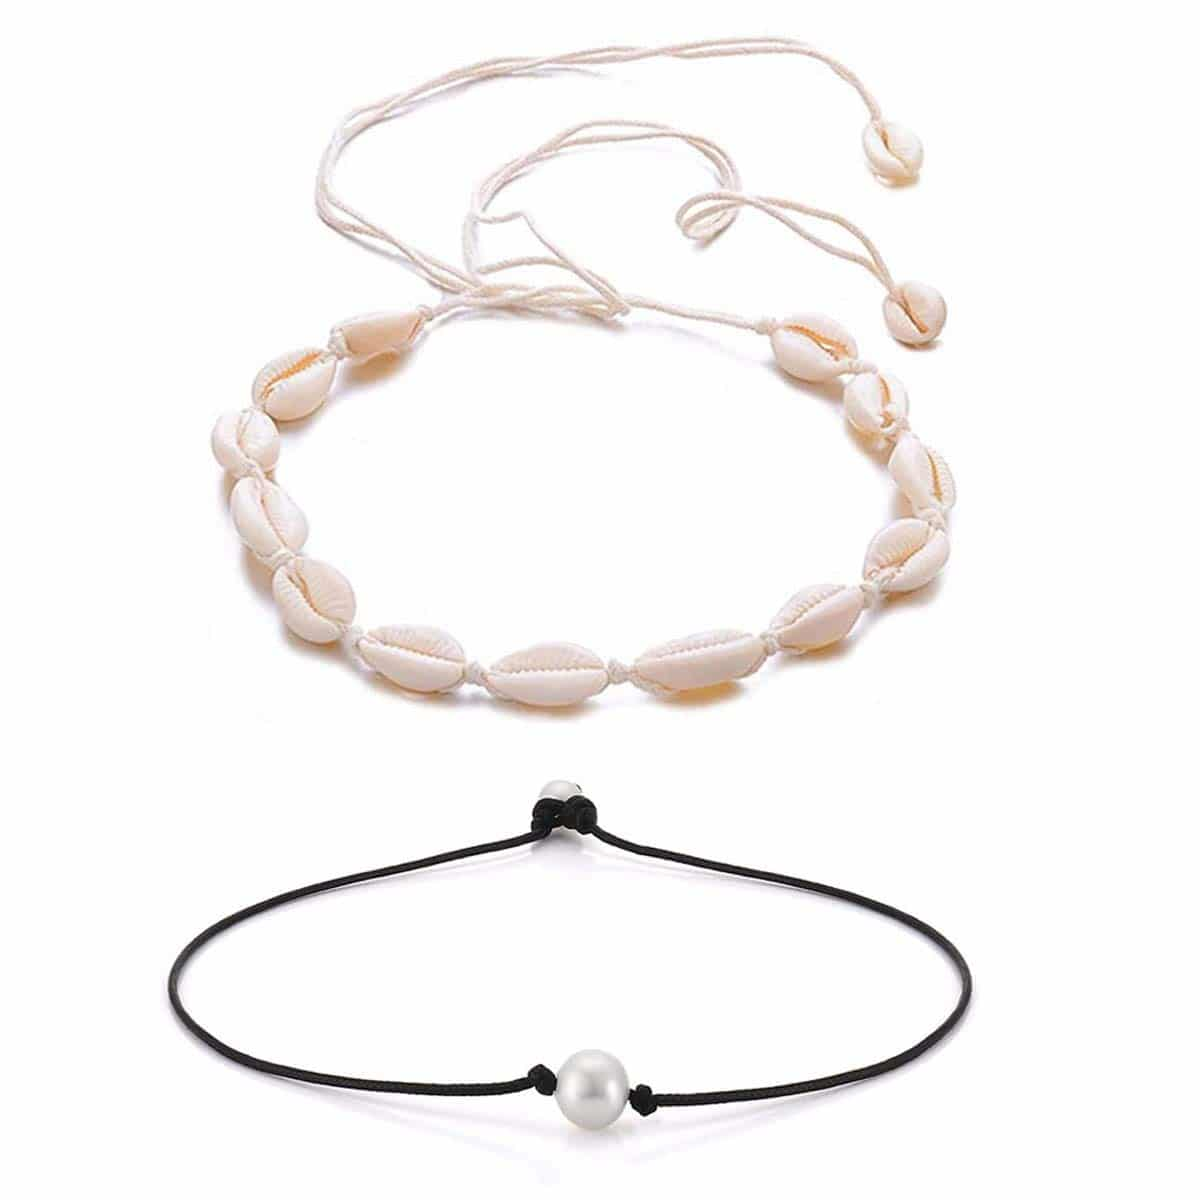 Cowrie Shell & Pearl Choker Necklace